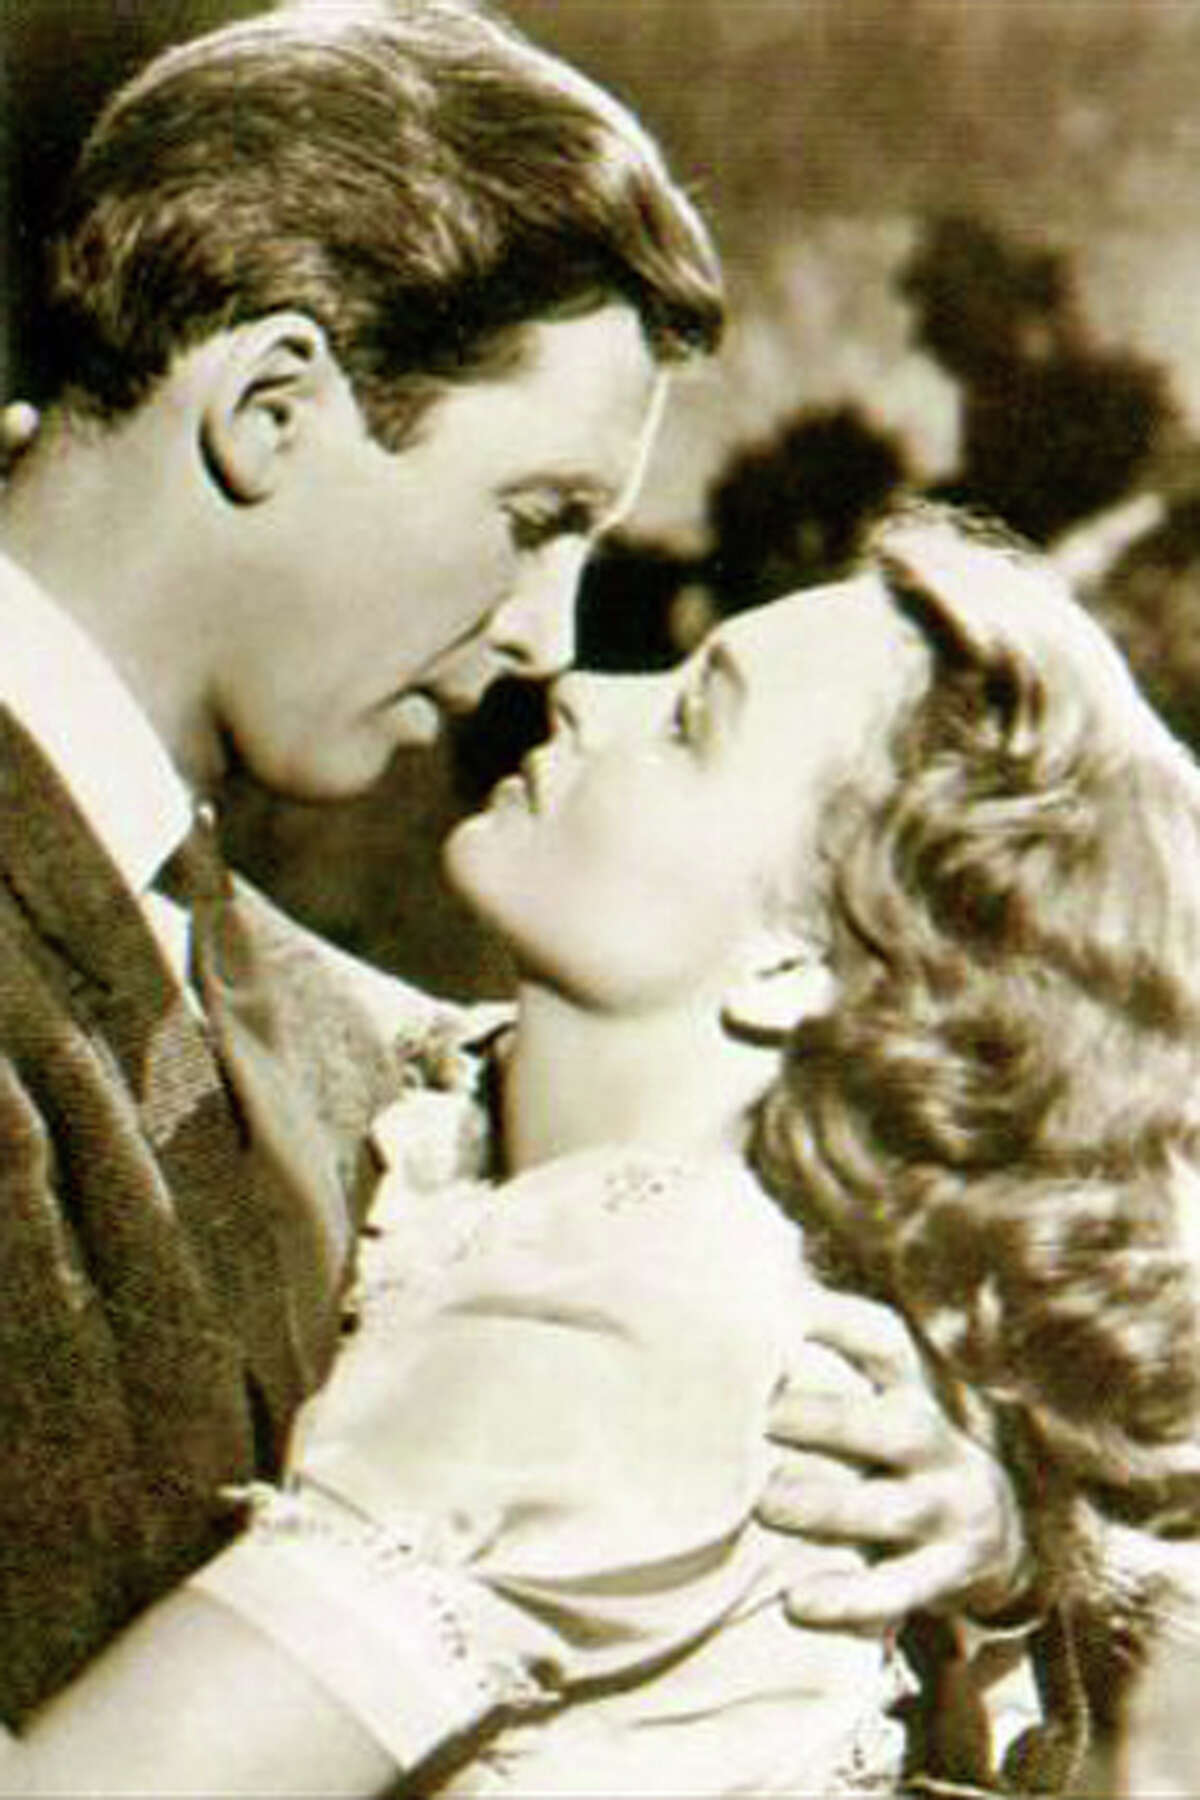 George and Mary about to kiss.